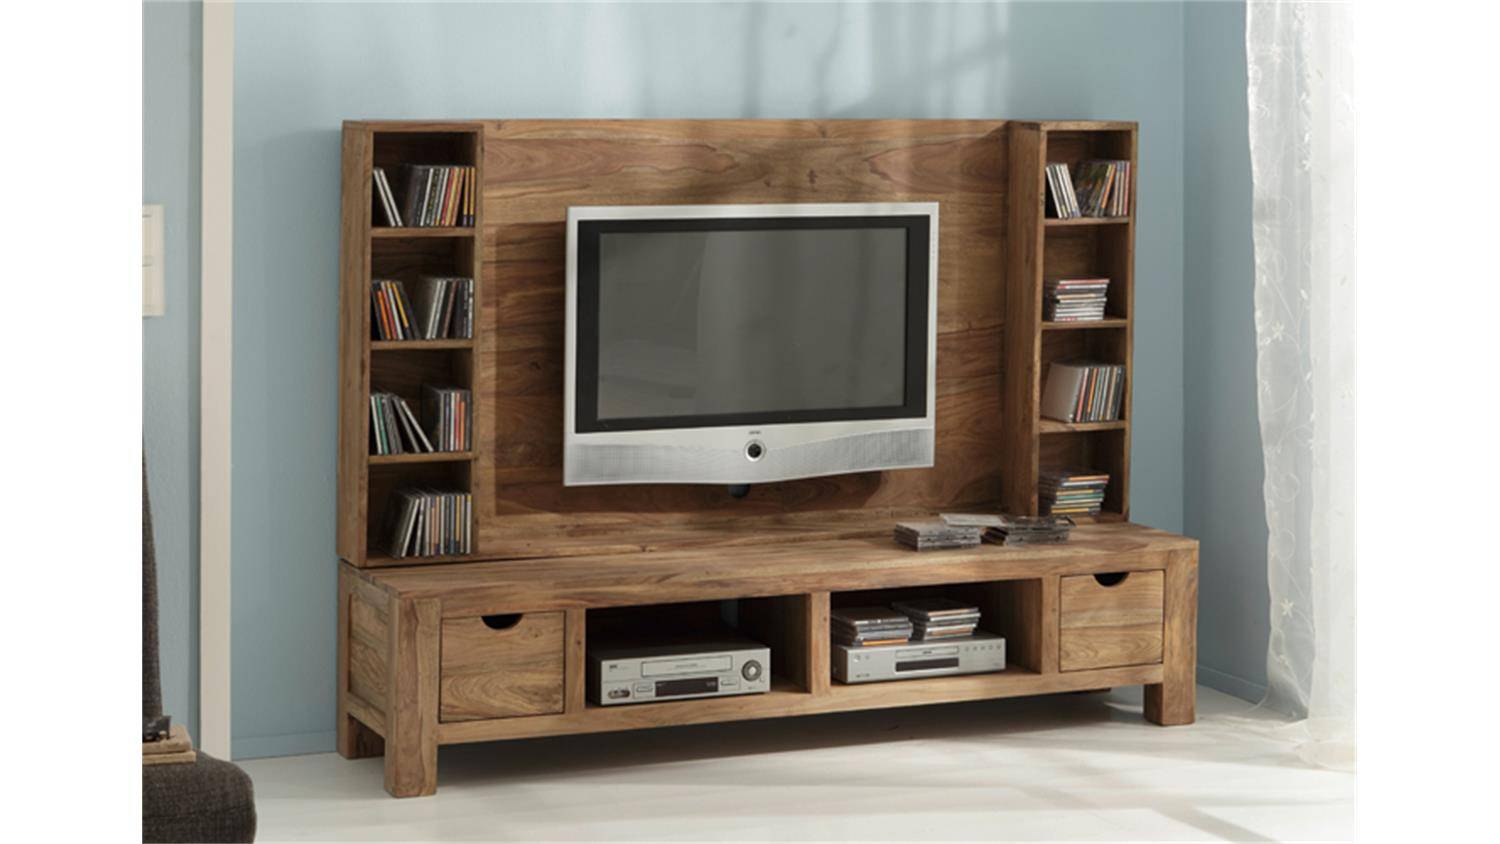 tv mbel hoch ligna tvlowboard eiche schubladen with tv mbel hoch interesting finebuy lowboard. Black Bedroom Furniture Sets. Home Design Ideas